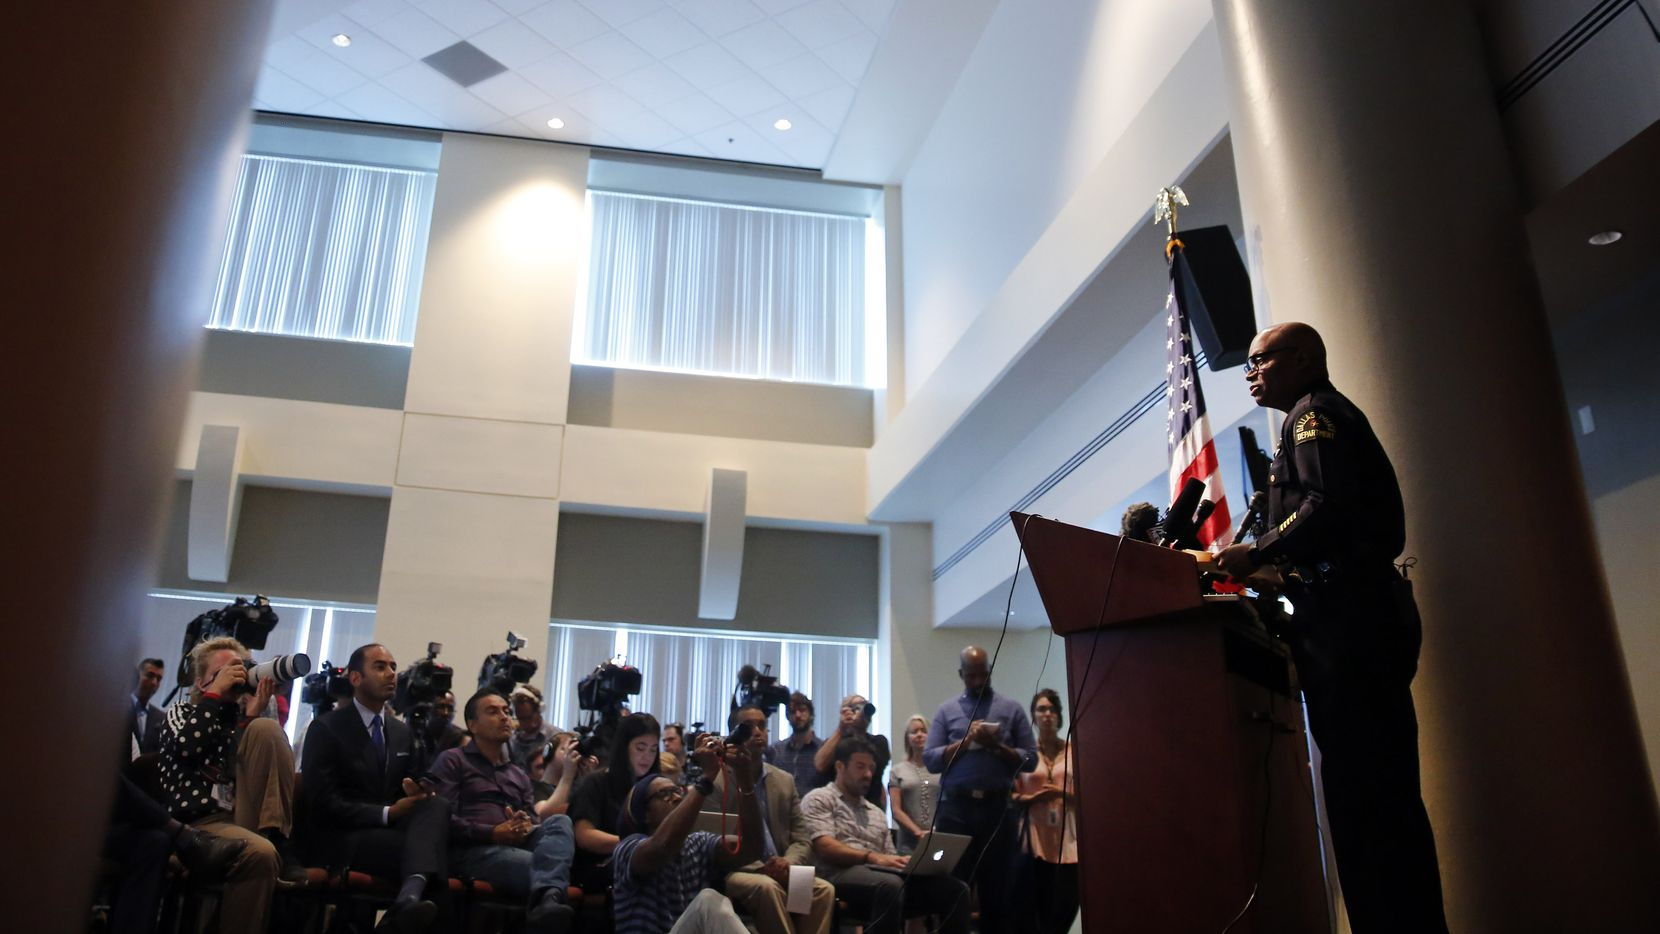 Dallas police chief David Brown answers questions about last week's shooting of his officers during a press conference at police headquarters in Dallas, Monday, July 11, 2016. (Tom Fox/The Dallas Morning News)